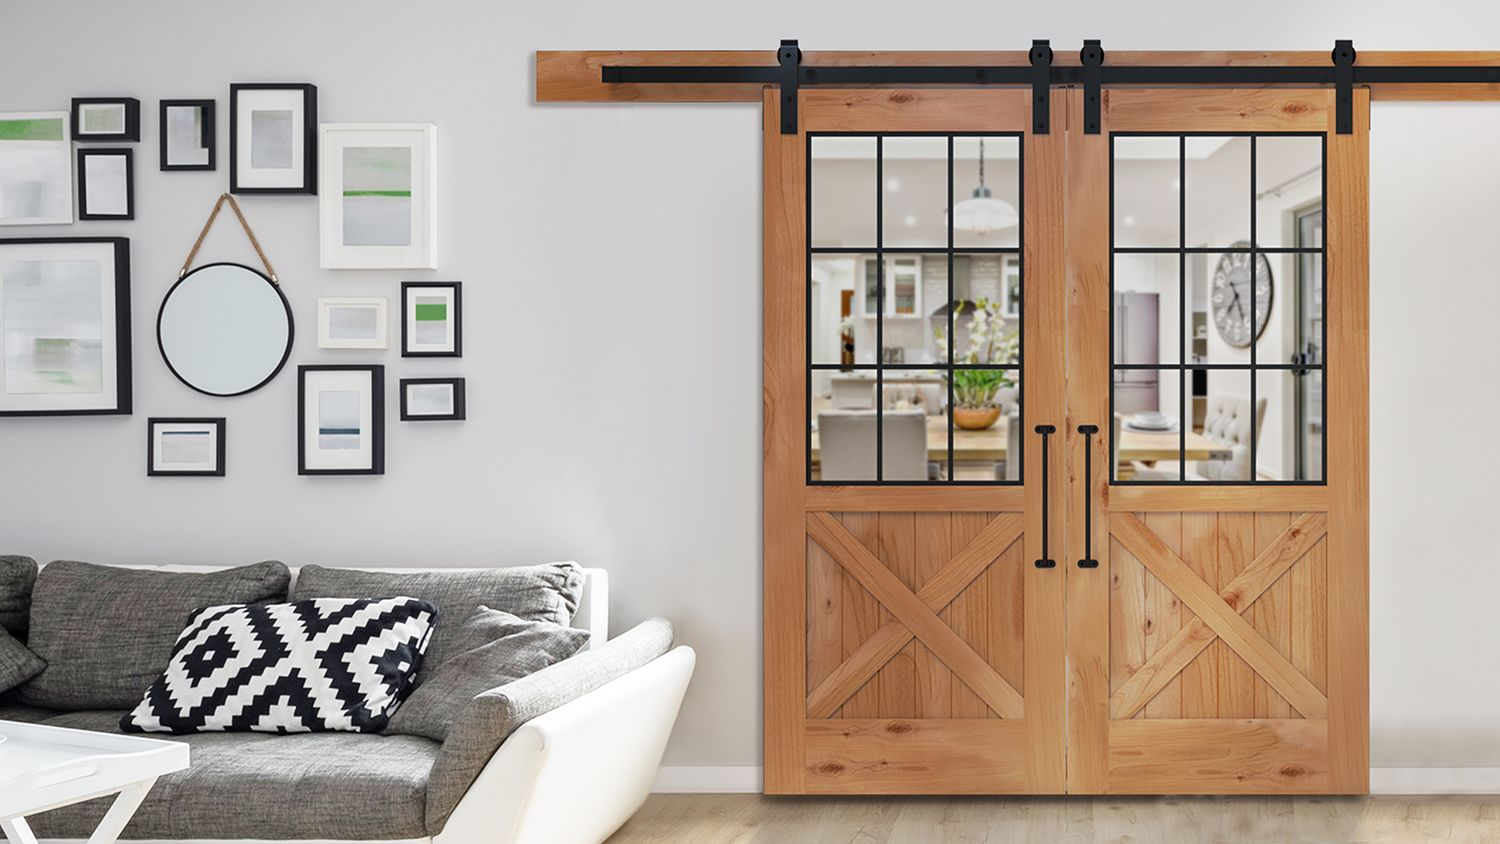 wooden doors for rustica hardware in a living room